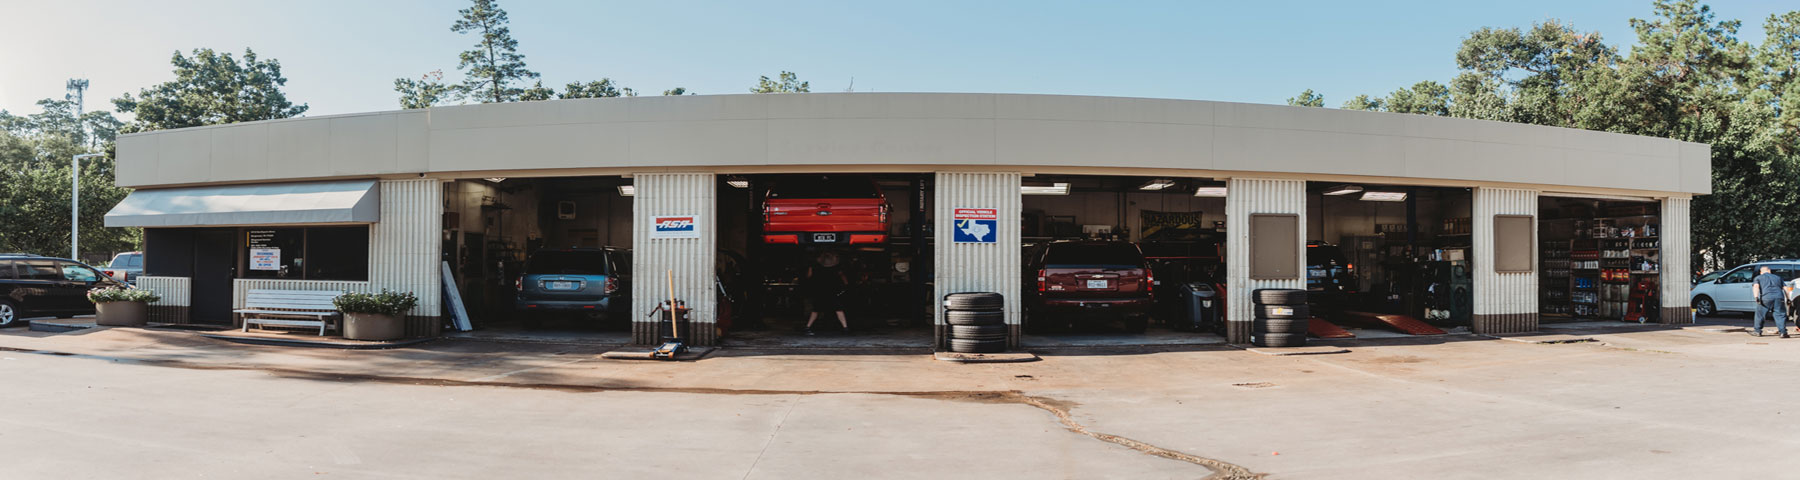 Kingwood service center expert auto repair kingwood tx 77339 celebrating 25 years of service solutioingenieria Image collections